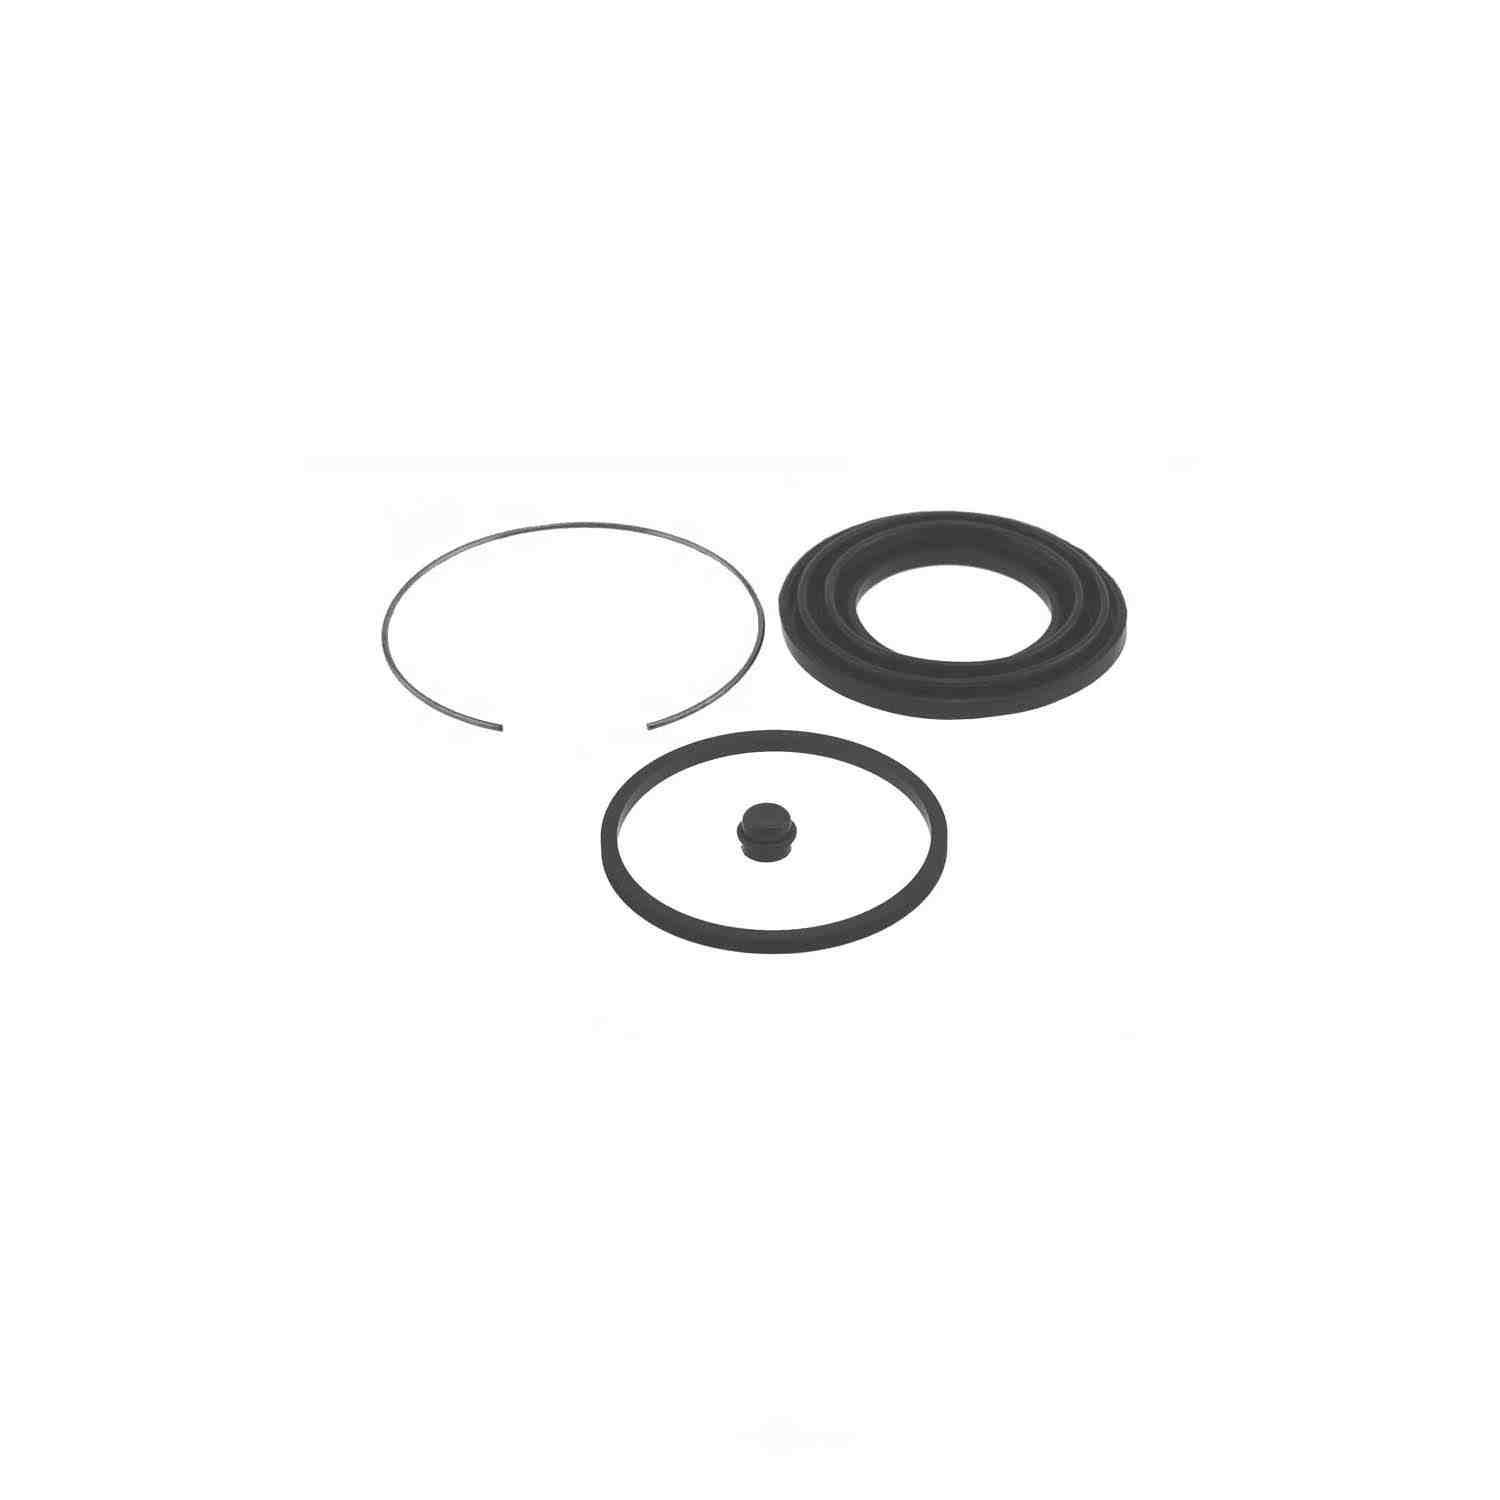 CARLSON QUALITY BRAKE PARTS - Disc Brake Caliper Repair Kit (Front) - CRL 15328